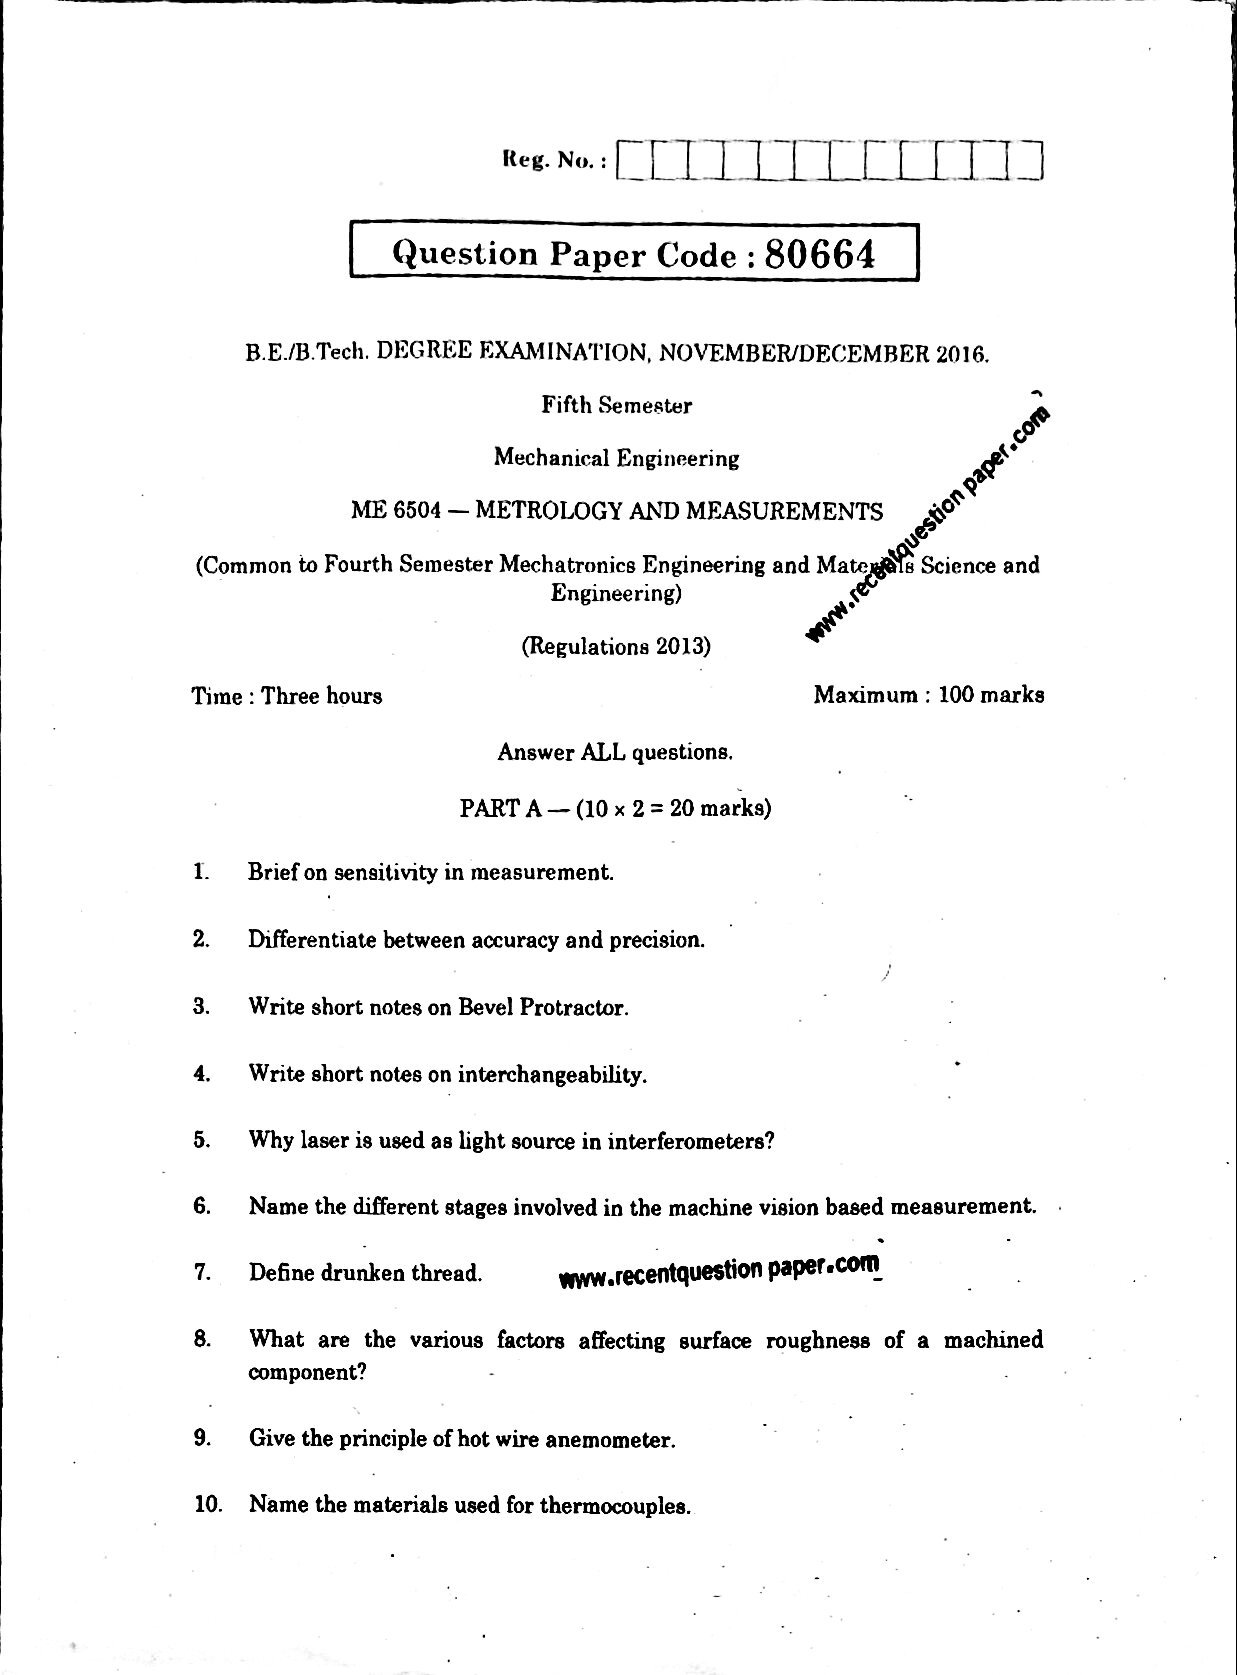 ME6504 METROLOGY AND MEASUREMENTS 0 - Recent Question Paper